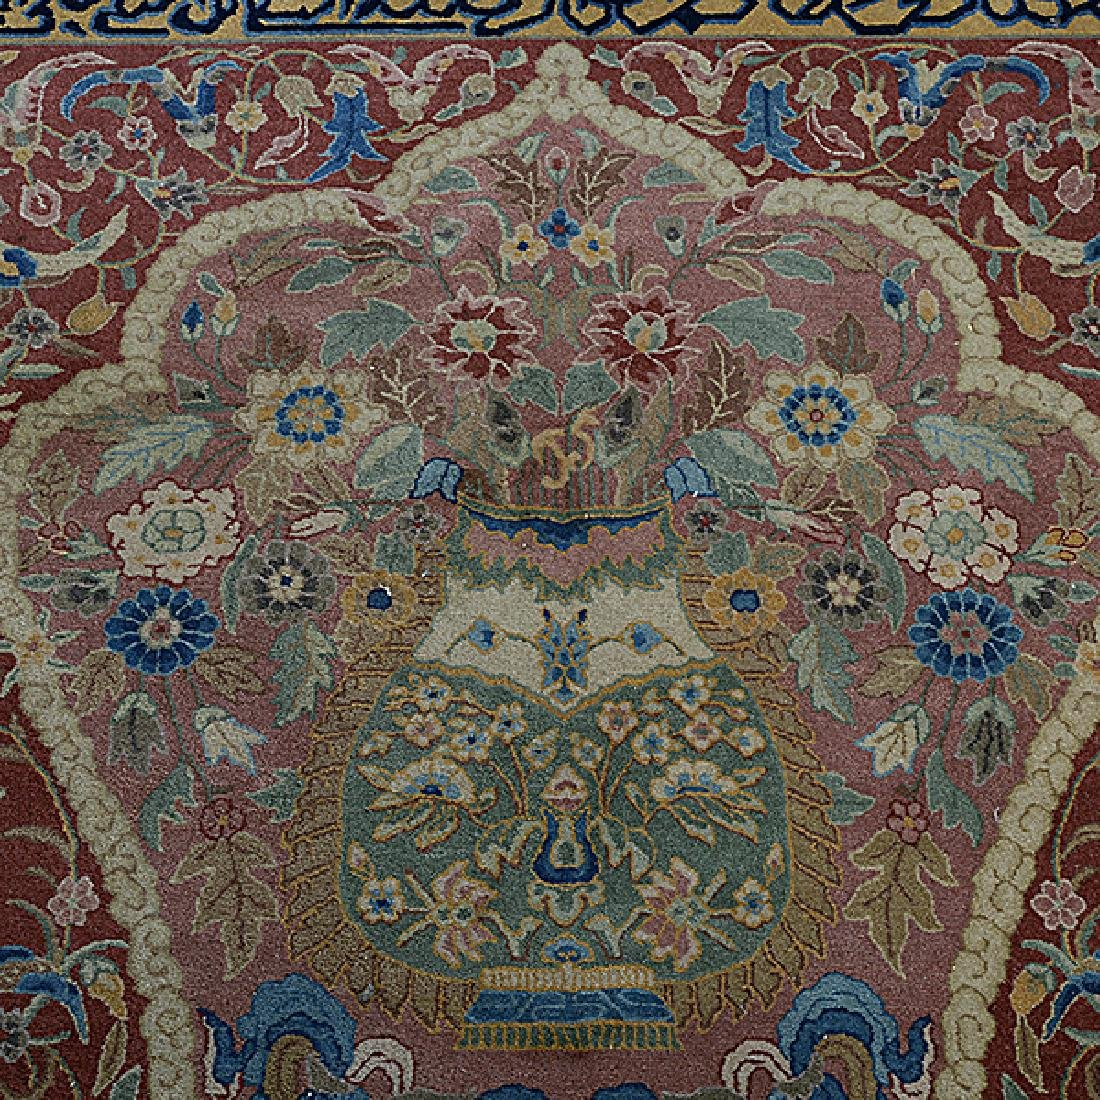 Islamic Figural Carpet Tapestry with Calligraphy: 5 - 4